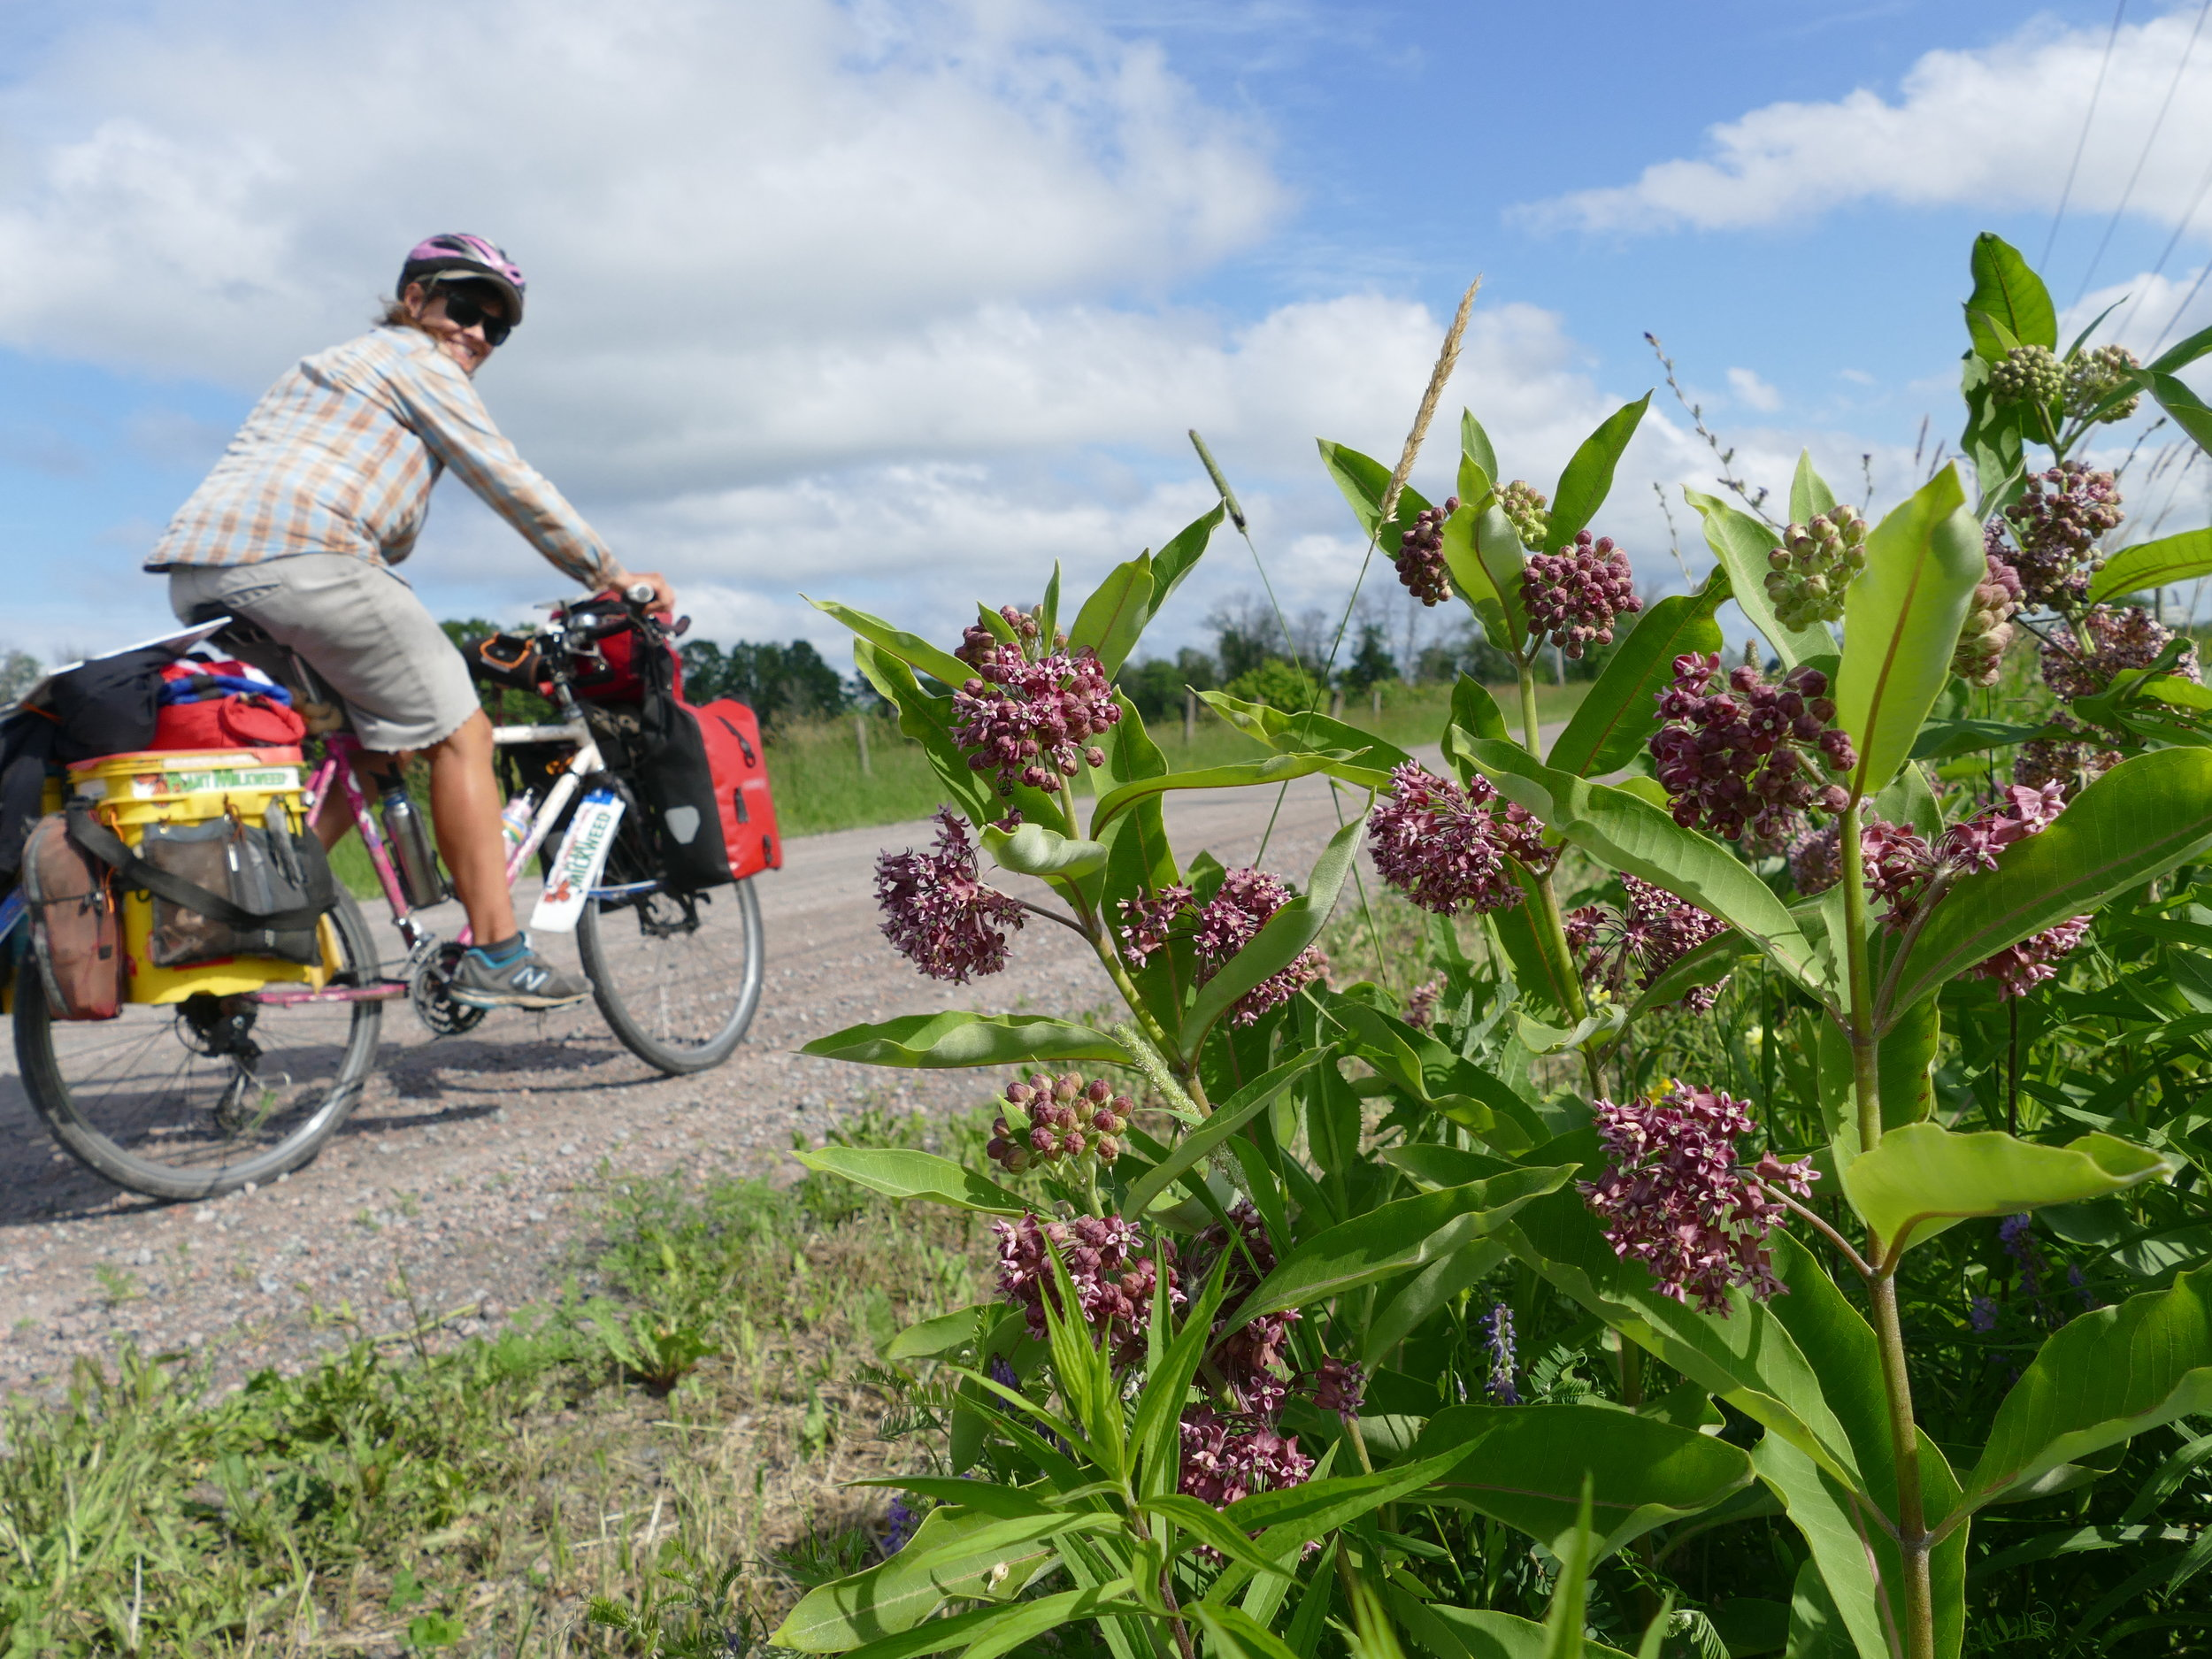 At least milkweed is beautiful and,riding by them, you can't ignore the color, all the pollinators they attract, or the strong, flowery smell.